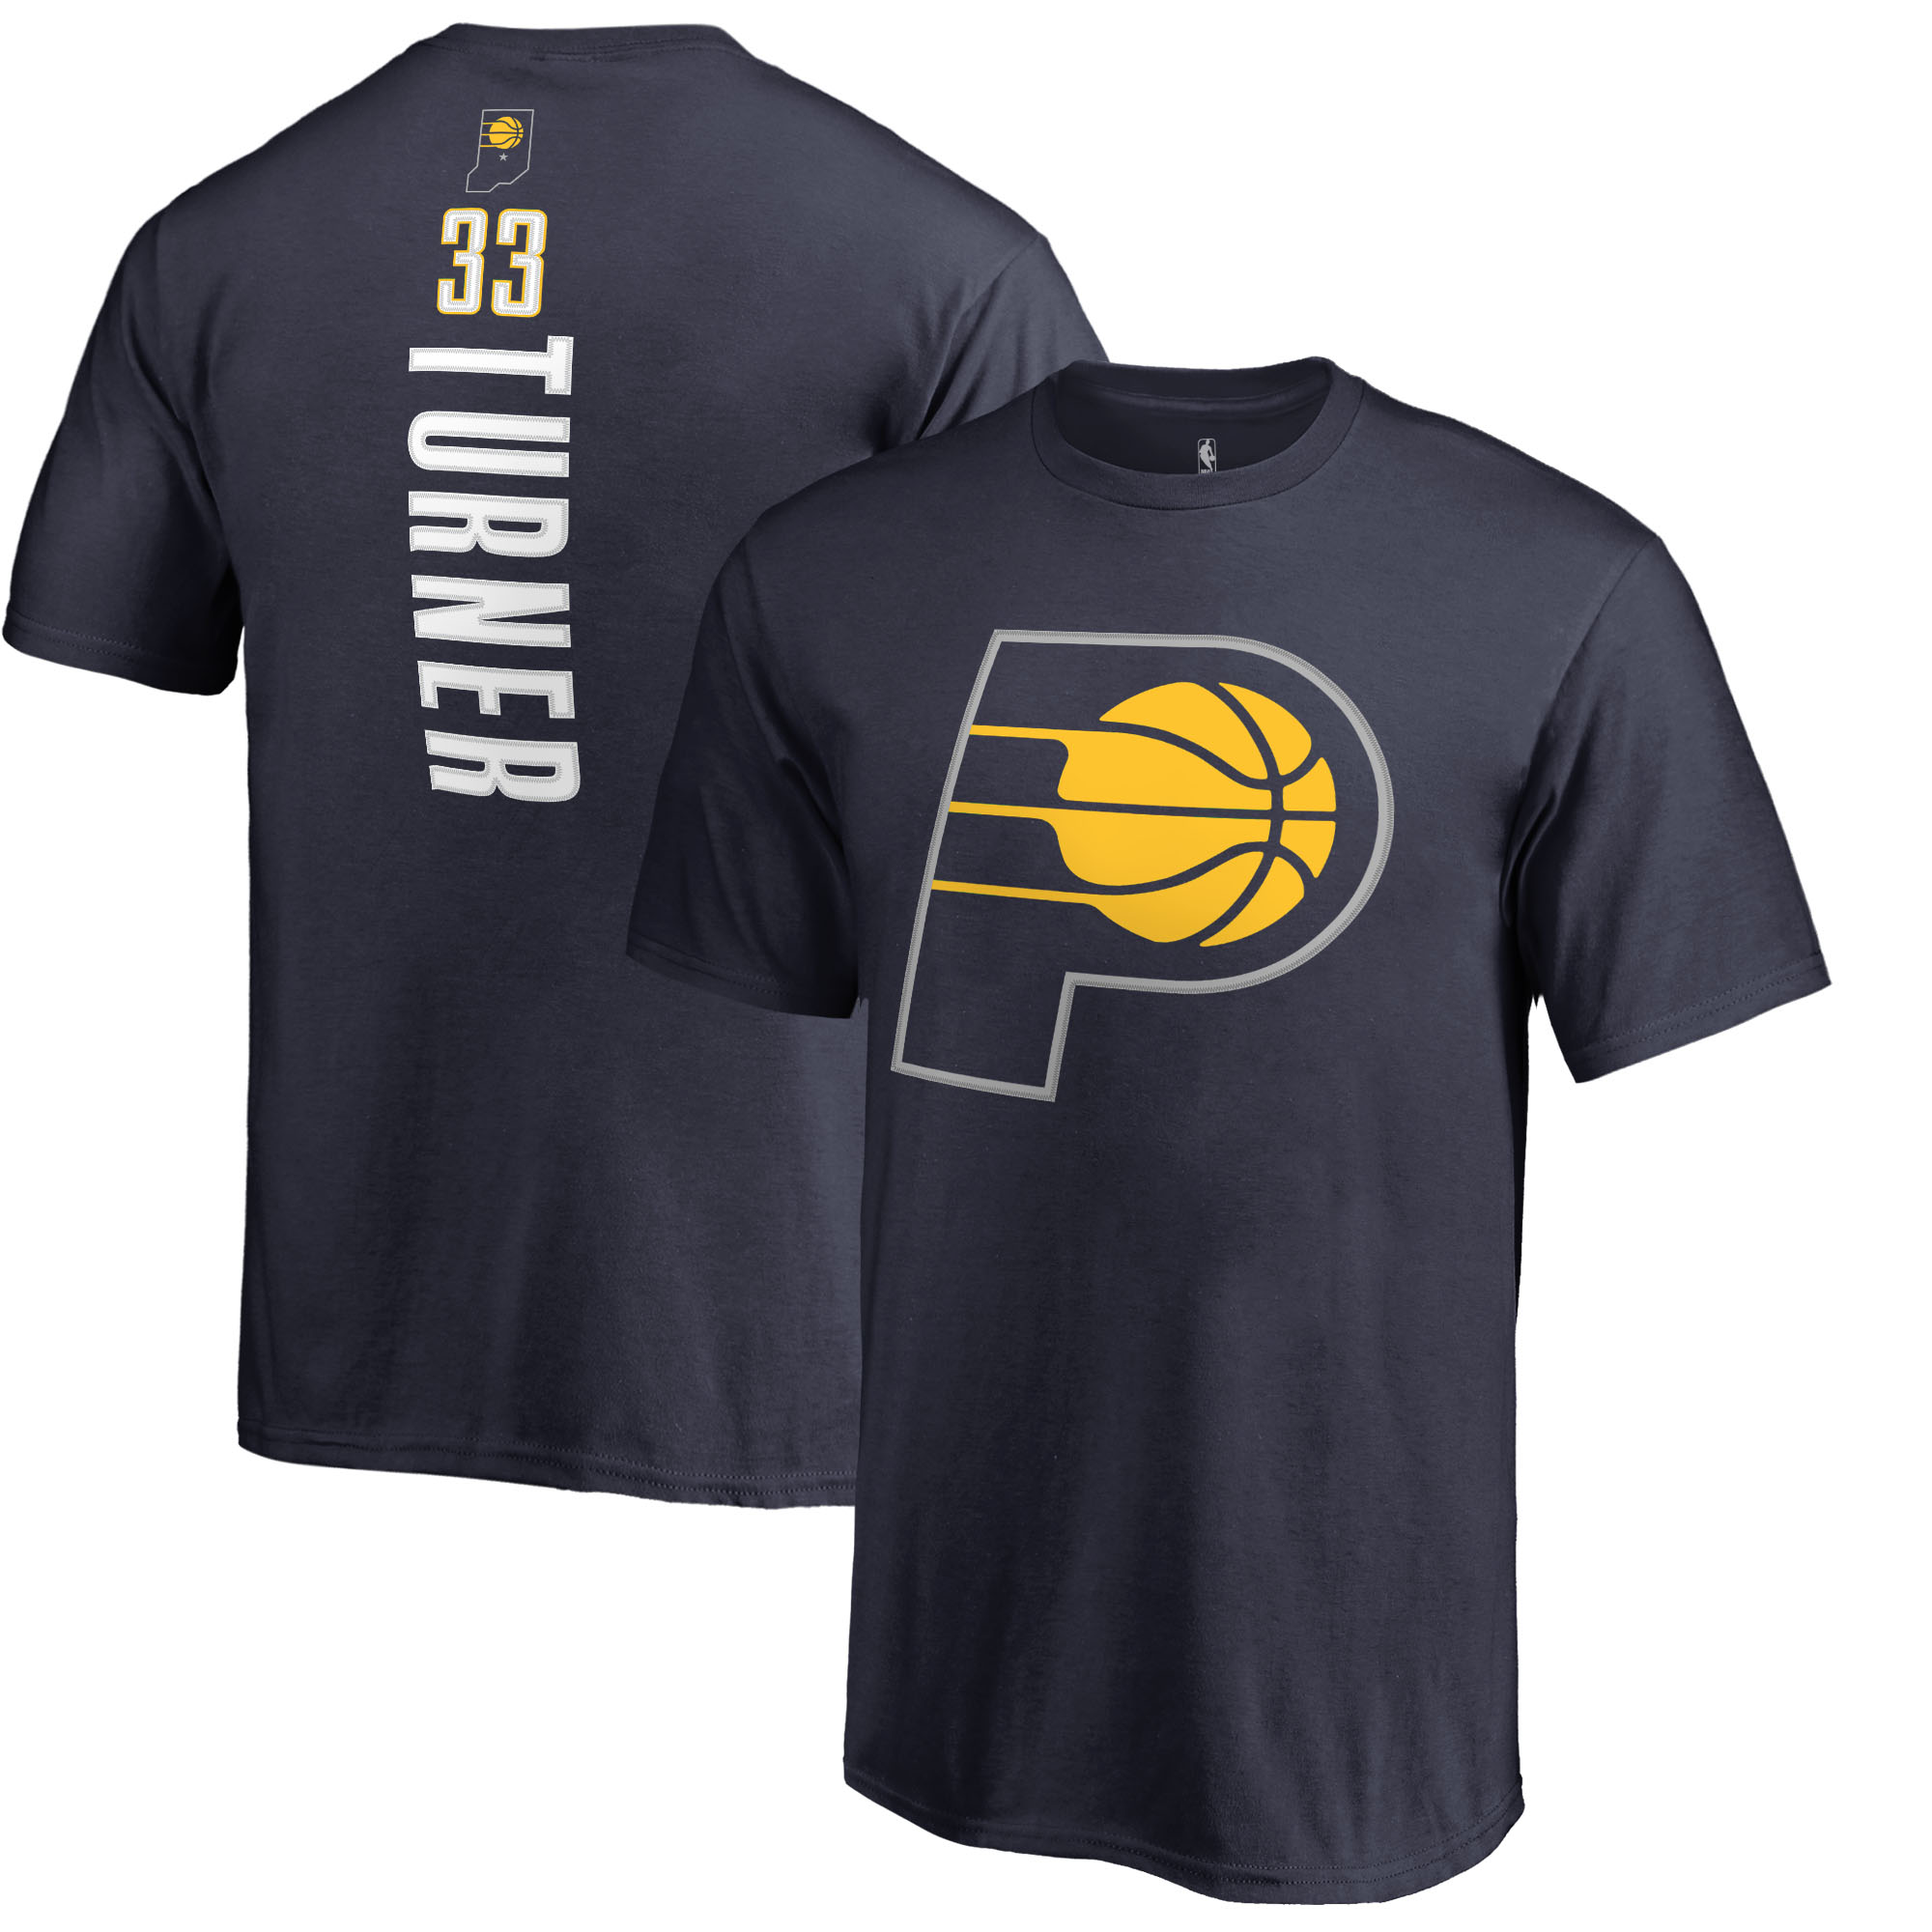 Myles Turner Indiana Pacers Fanatics Branded Youth Team Backer Name & Number T-Shirt - Navy